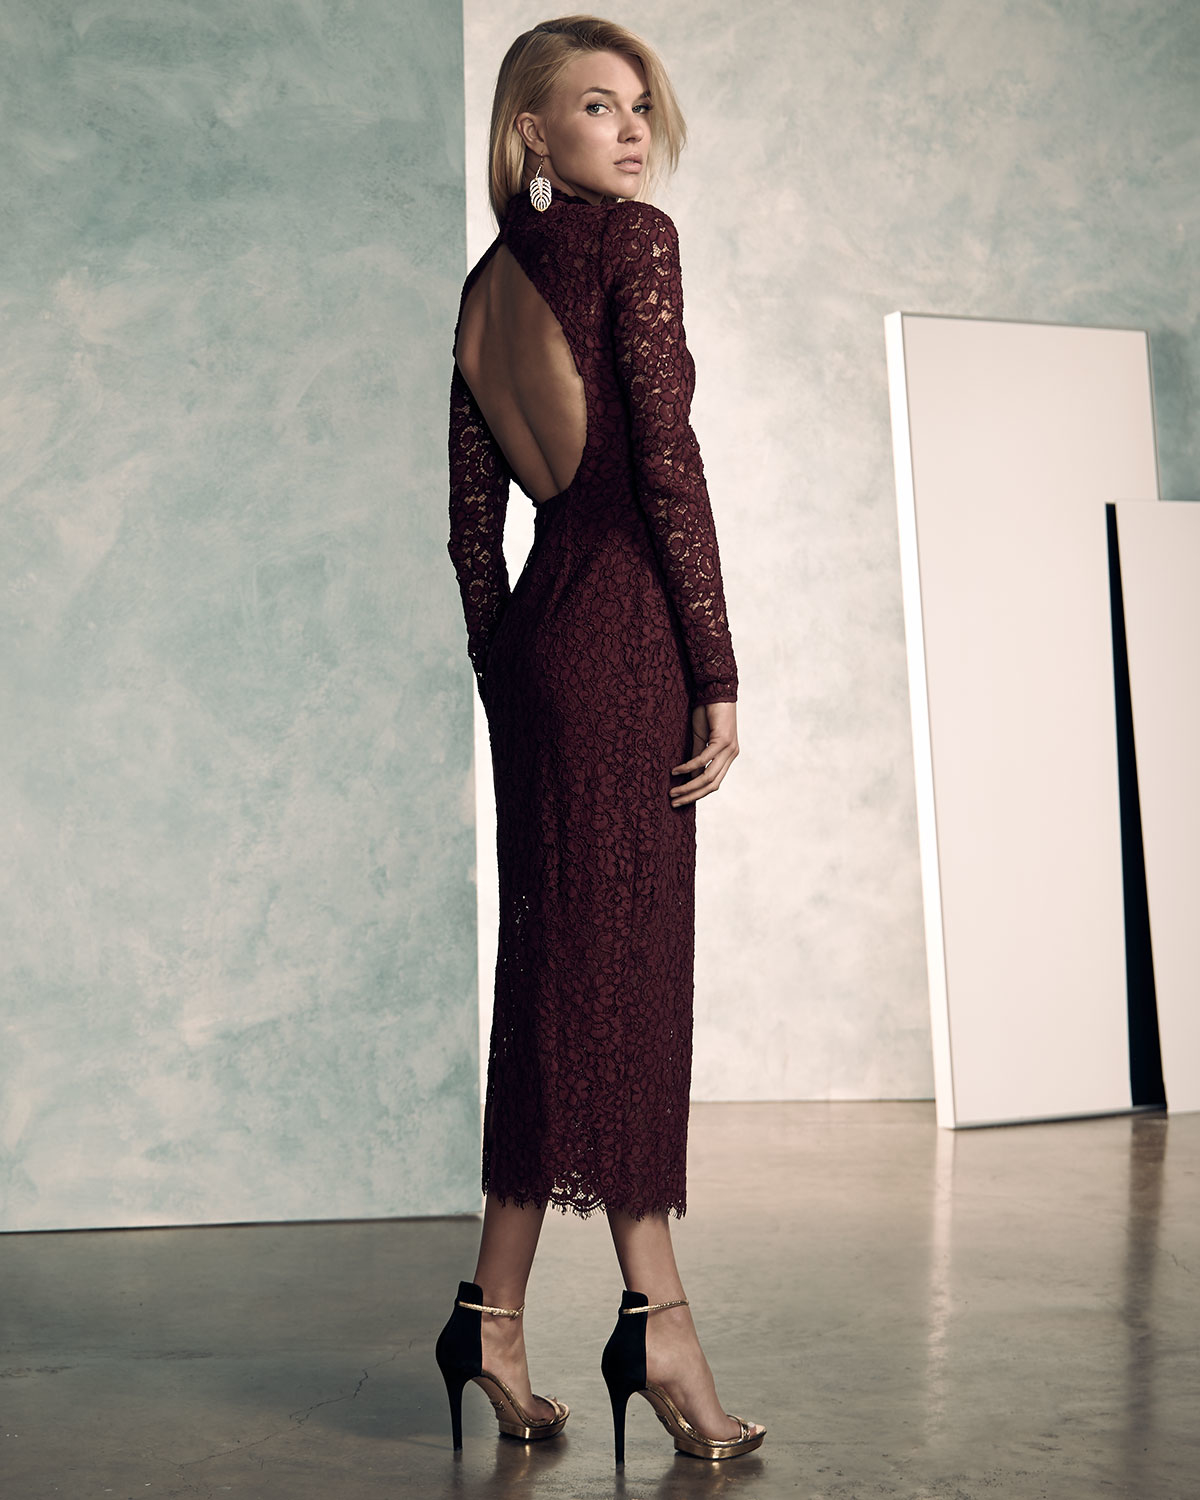 Lyst - Monique lhuillier Long-sleeve Lace Midi Cocktail Dress in Red